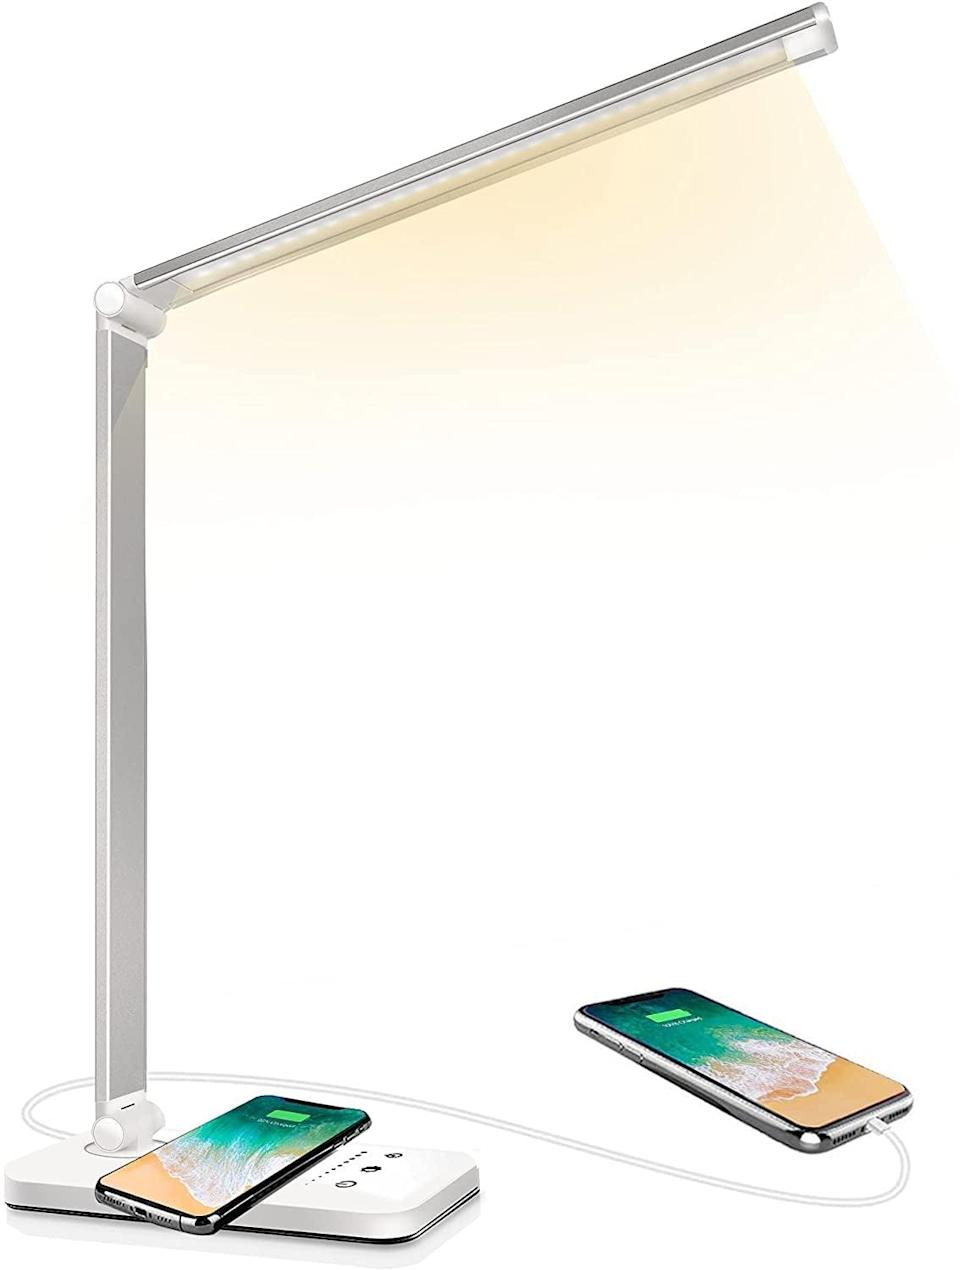 <p>Whether you're a student or a young professional, get your desk a sleek lamp like the <span>LED Desk Lamp With Wireless Charger</span> ($27) that does more than just provide light. It's also wireless charger and has a USB port for extra charging. The lamp has ten brightness levels, five lighting modes, multidirectional adjusting, and has an auto timer for when you fall asleep while studying. </p>